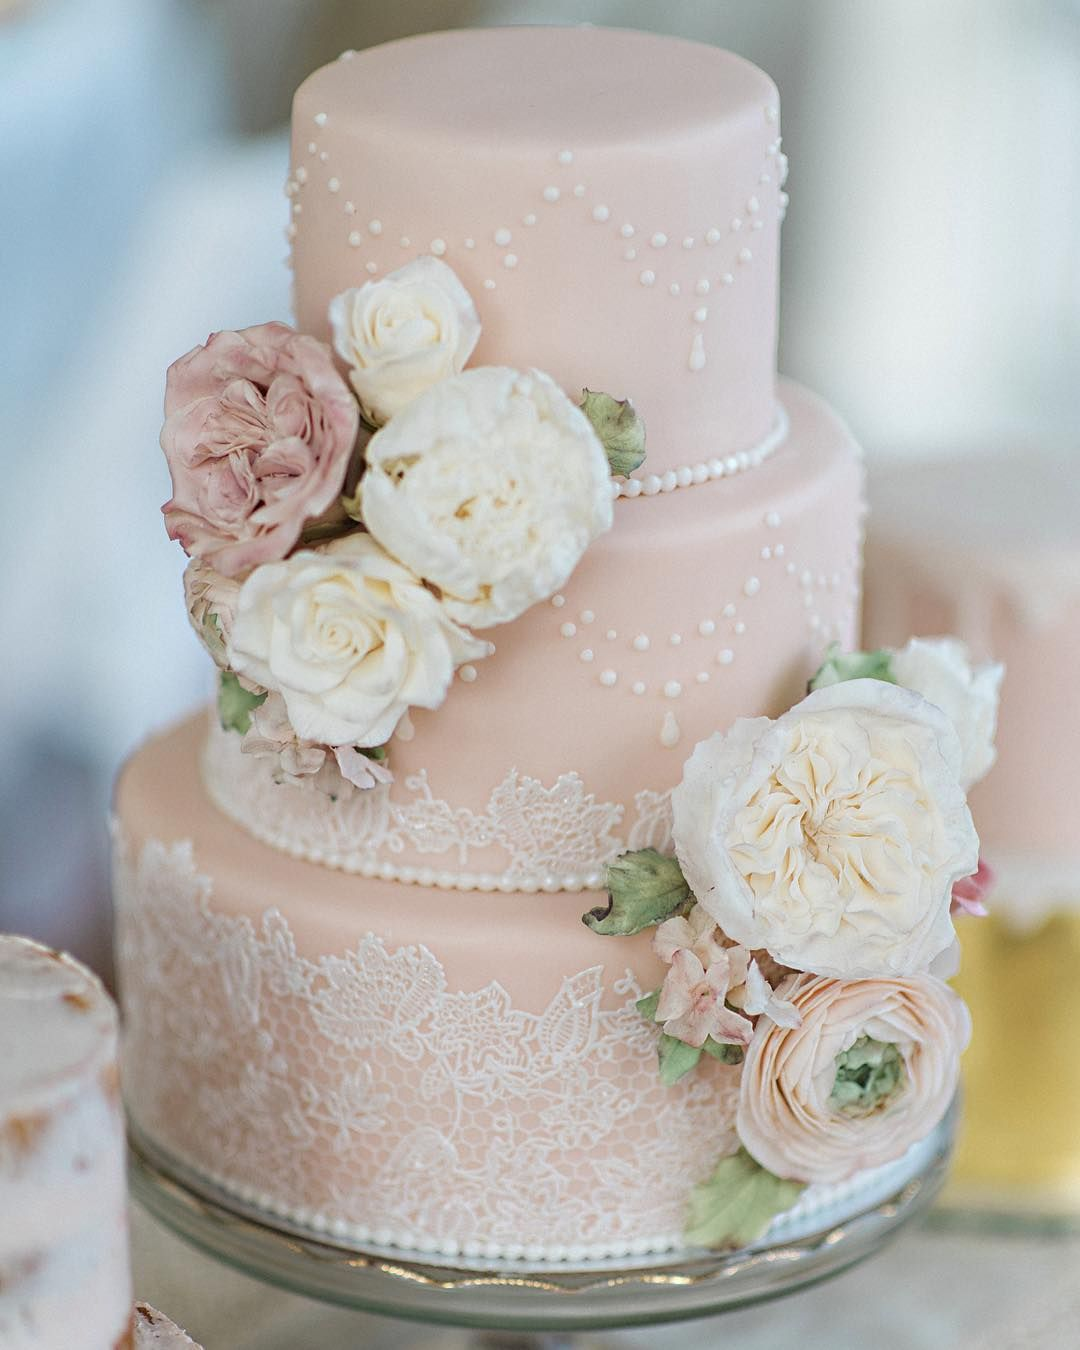 Blush Wedding Cake Weddingcake Cakephoto